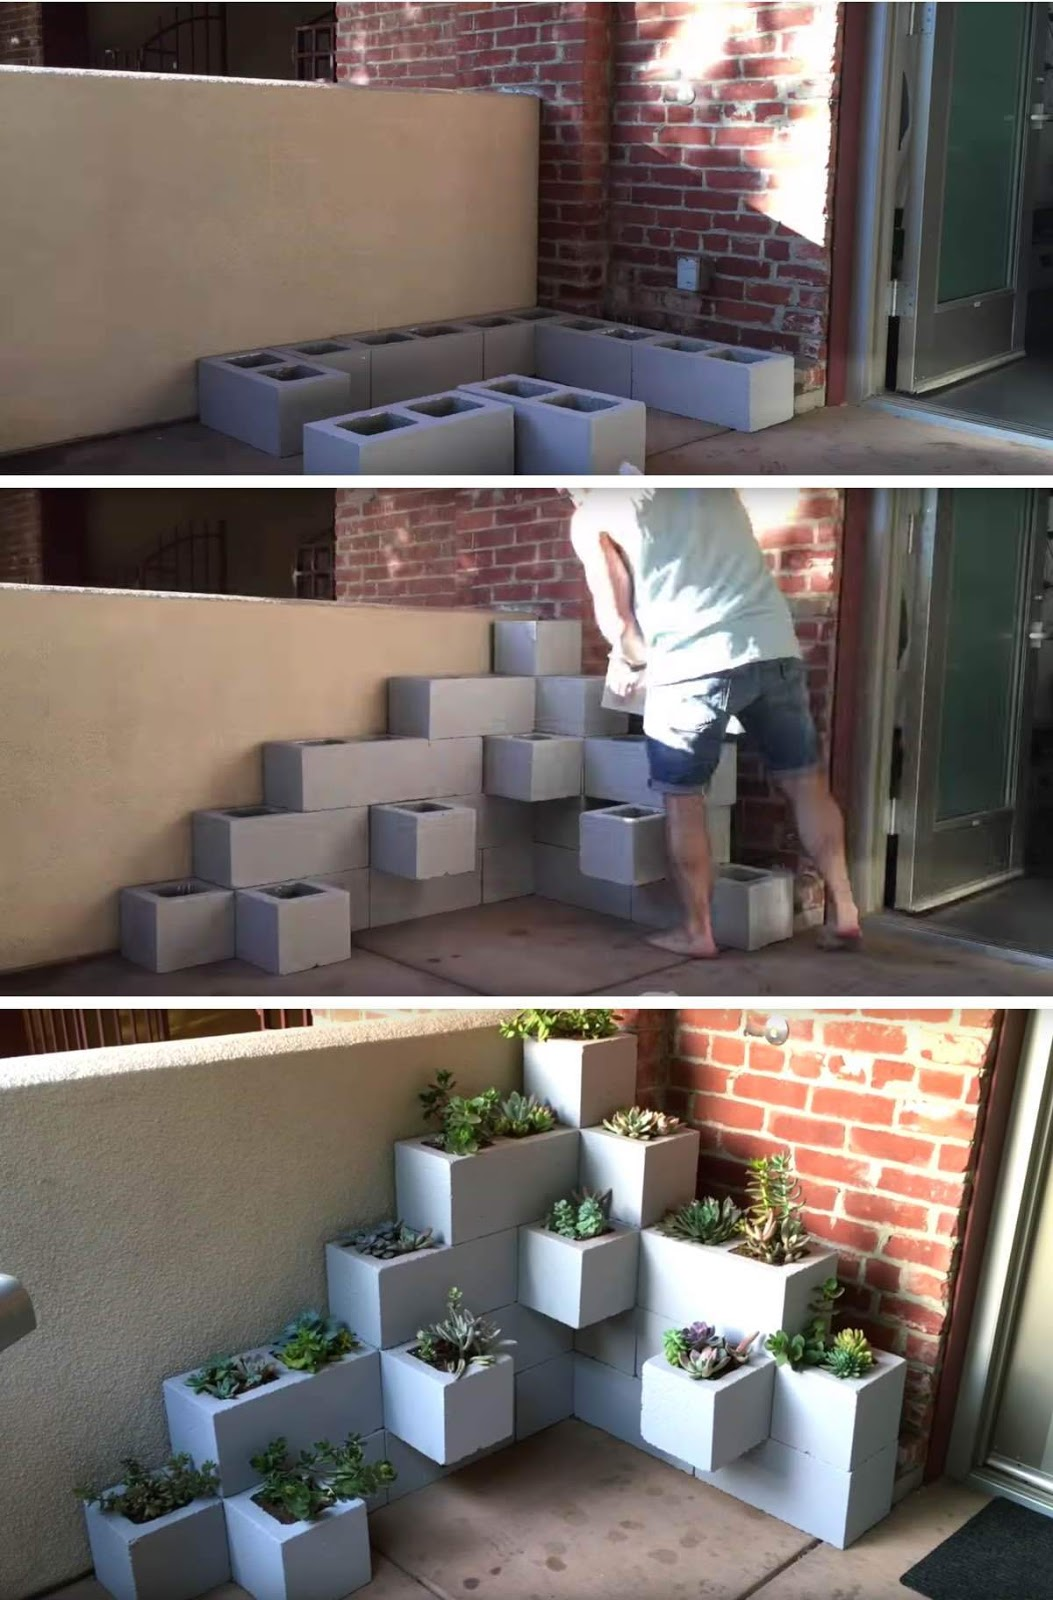 3STUNN%257E2 25 Stunning Planter Concrete Blocks Alternatives to Transform Your Backyard And That Are All Your Front Porch Needs Interior